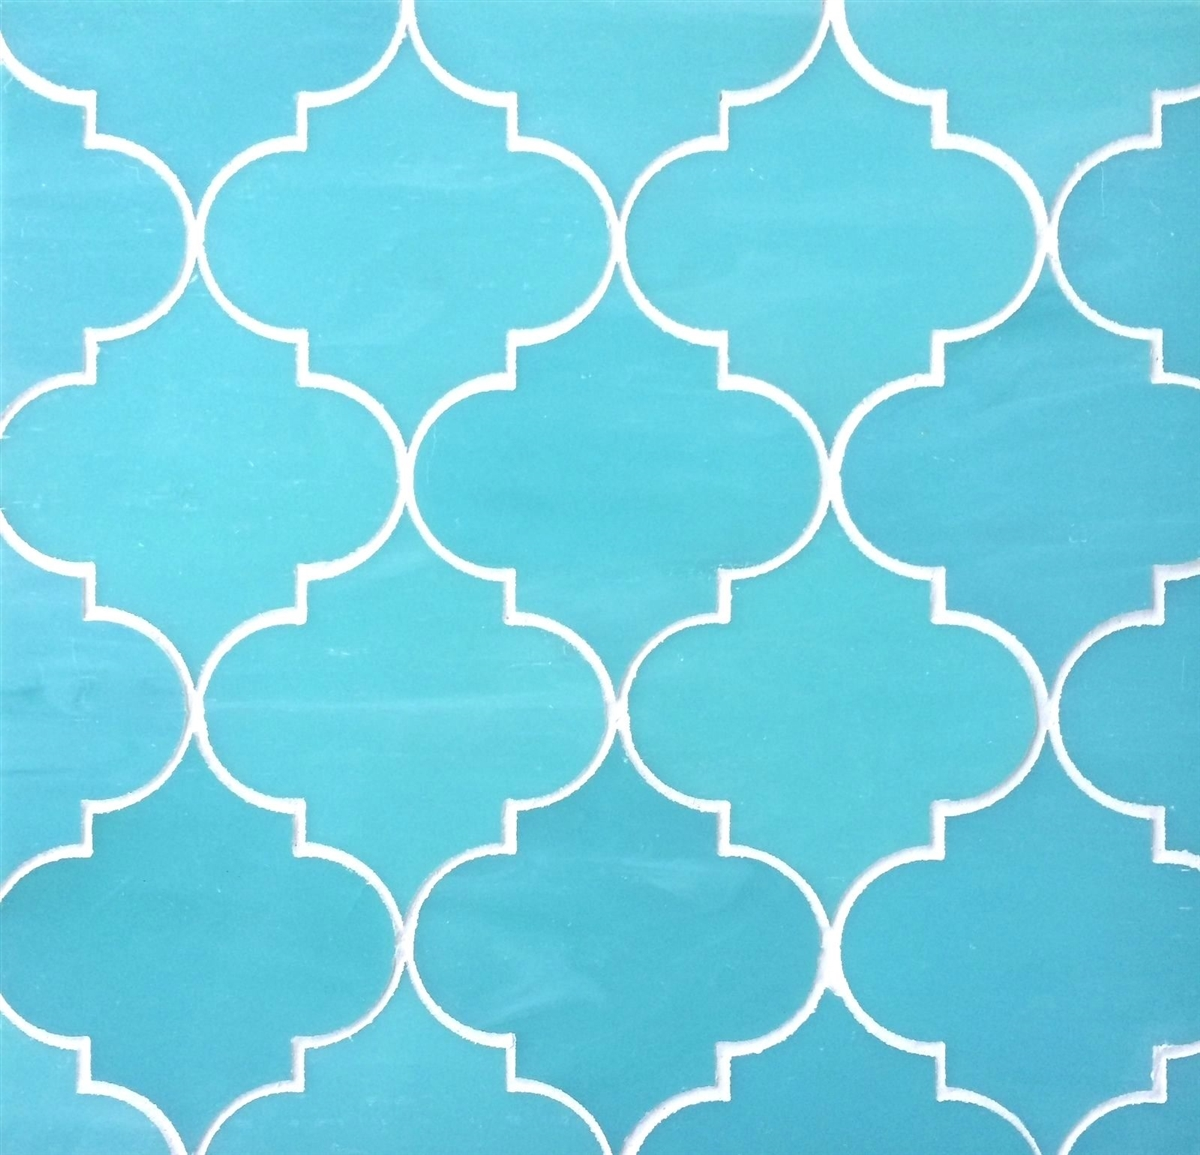 Arabesque Moroccan Turquoise 11x13 Glass Tile Mosaic